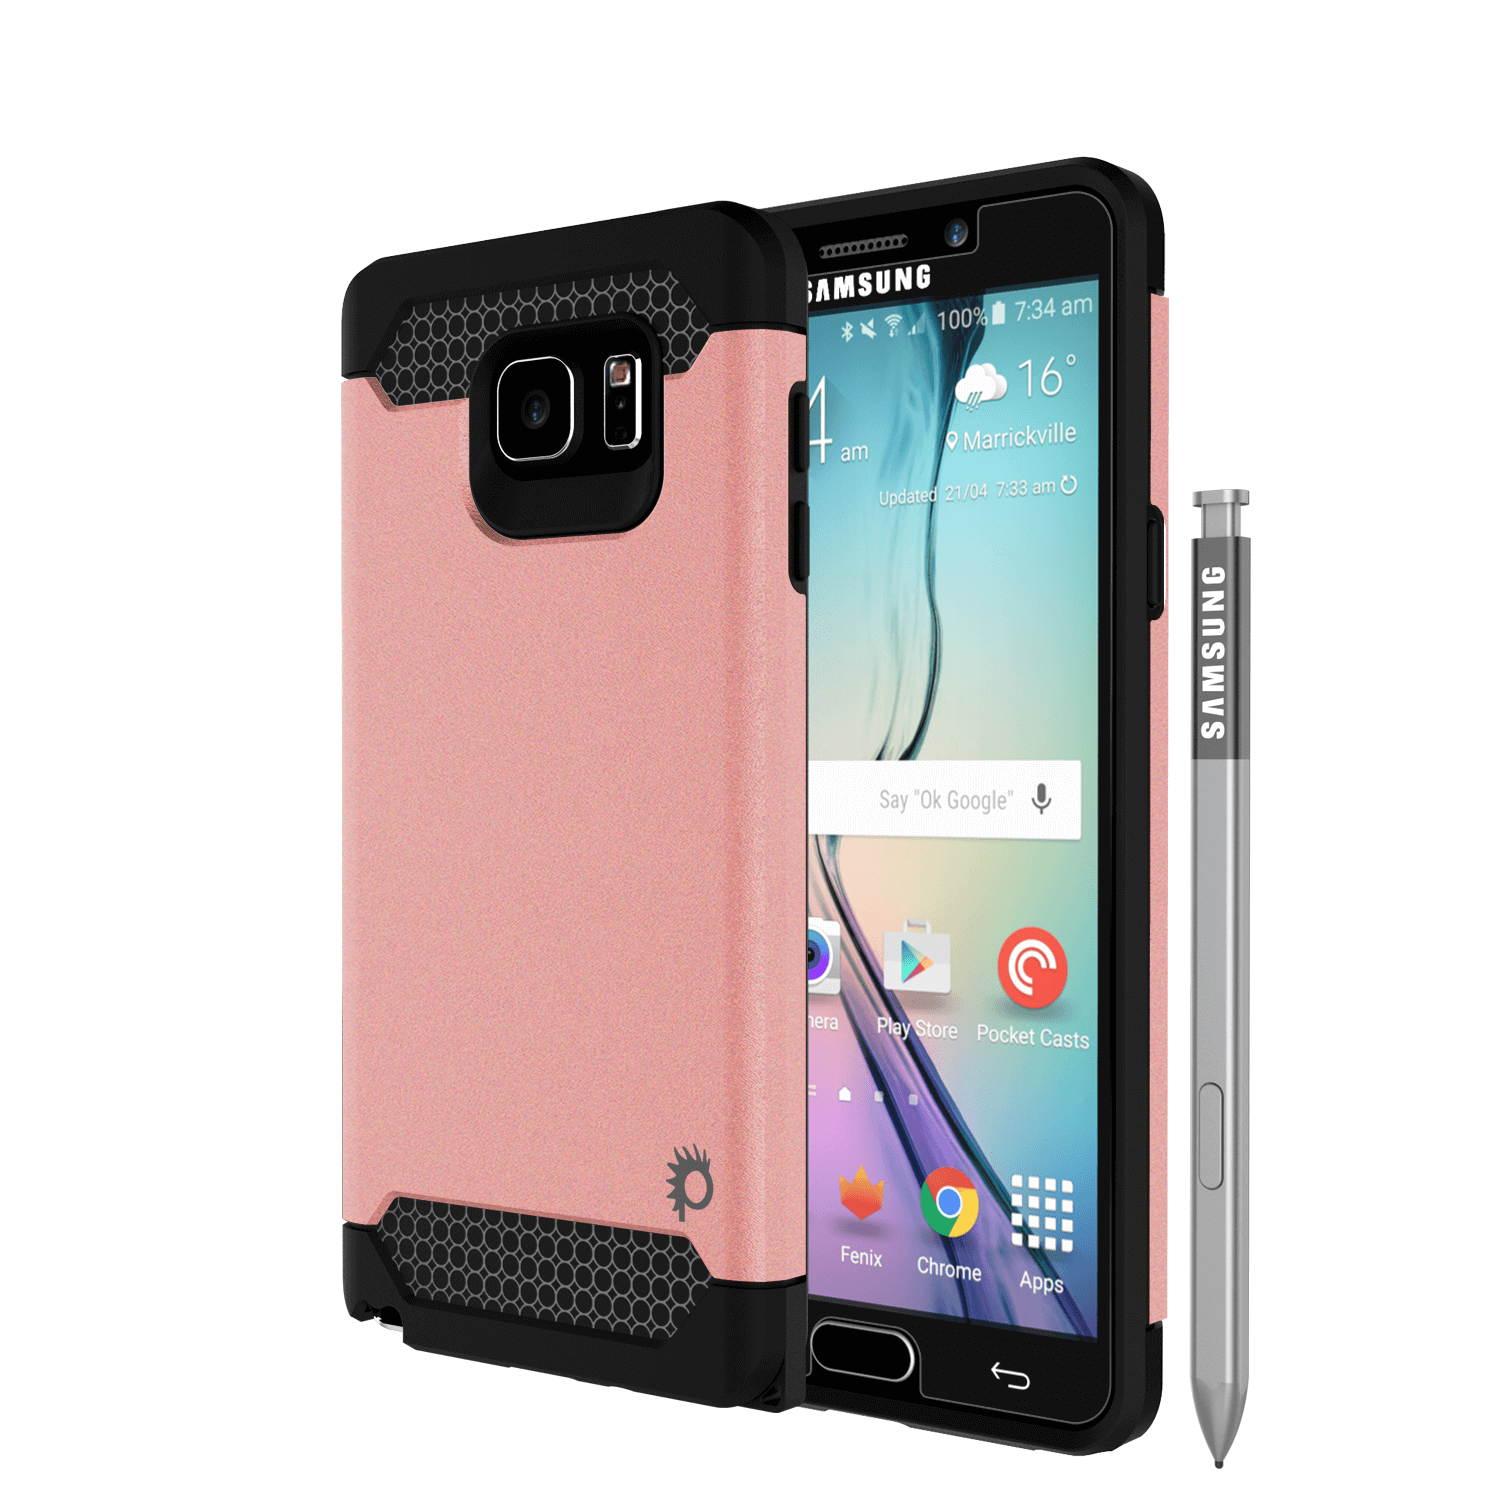 Galaxy Note 5 Case PunkCase Galactic Rose Gold Slim Armor Soft Cover Case w/ Tempered Glass